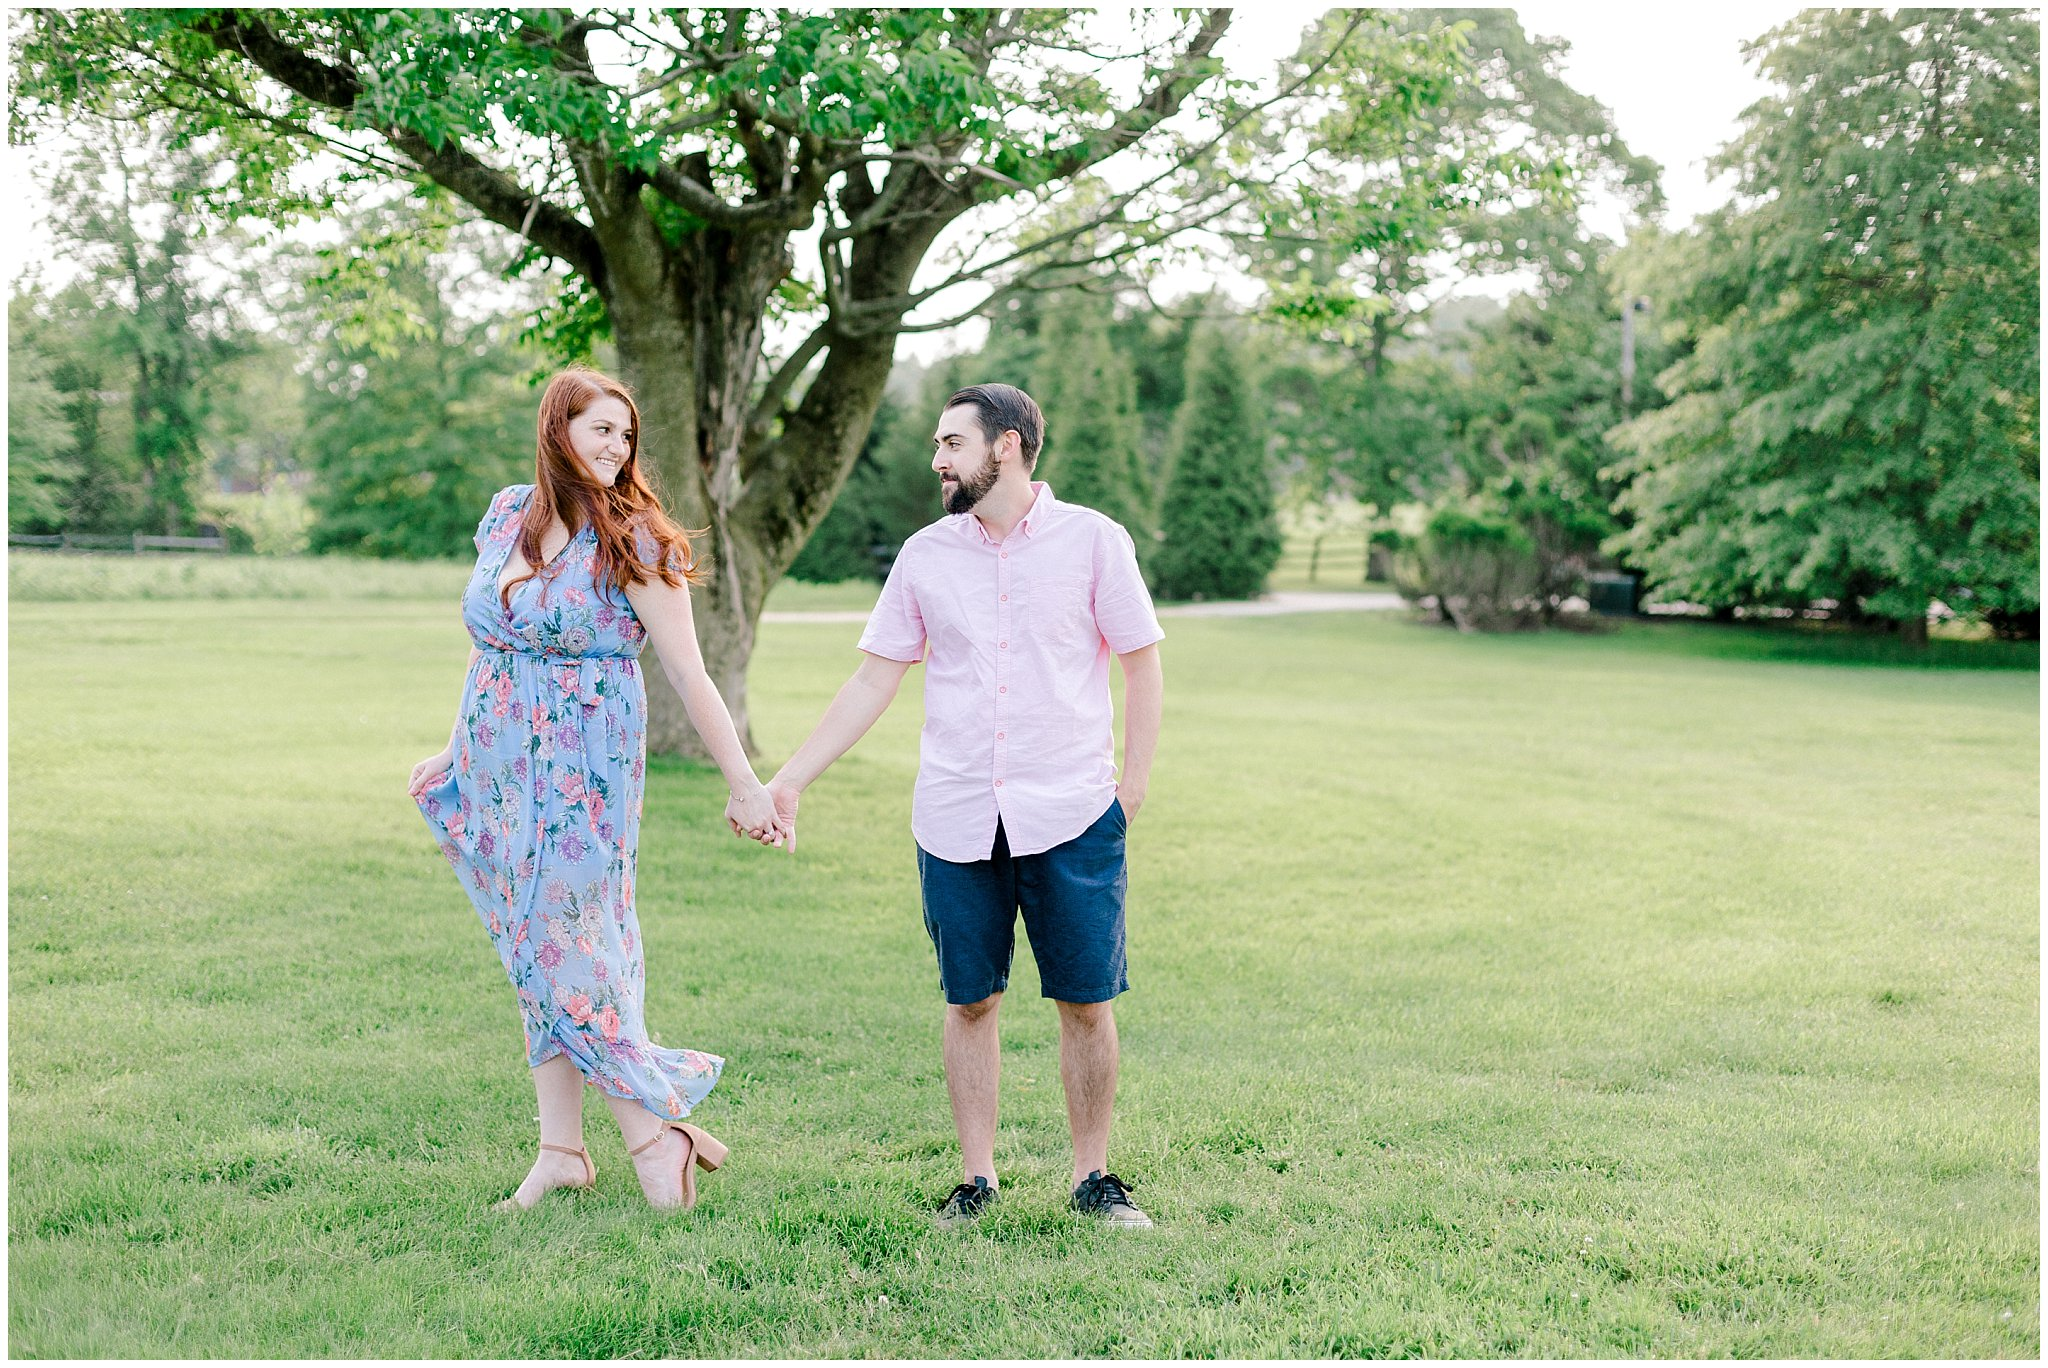 Manor house at prophecy Creek Blue Bell PA wedding venue summertime field engagement session lehigh valley based wedding and lifestyle photographe_0002.jpg